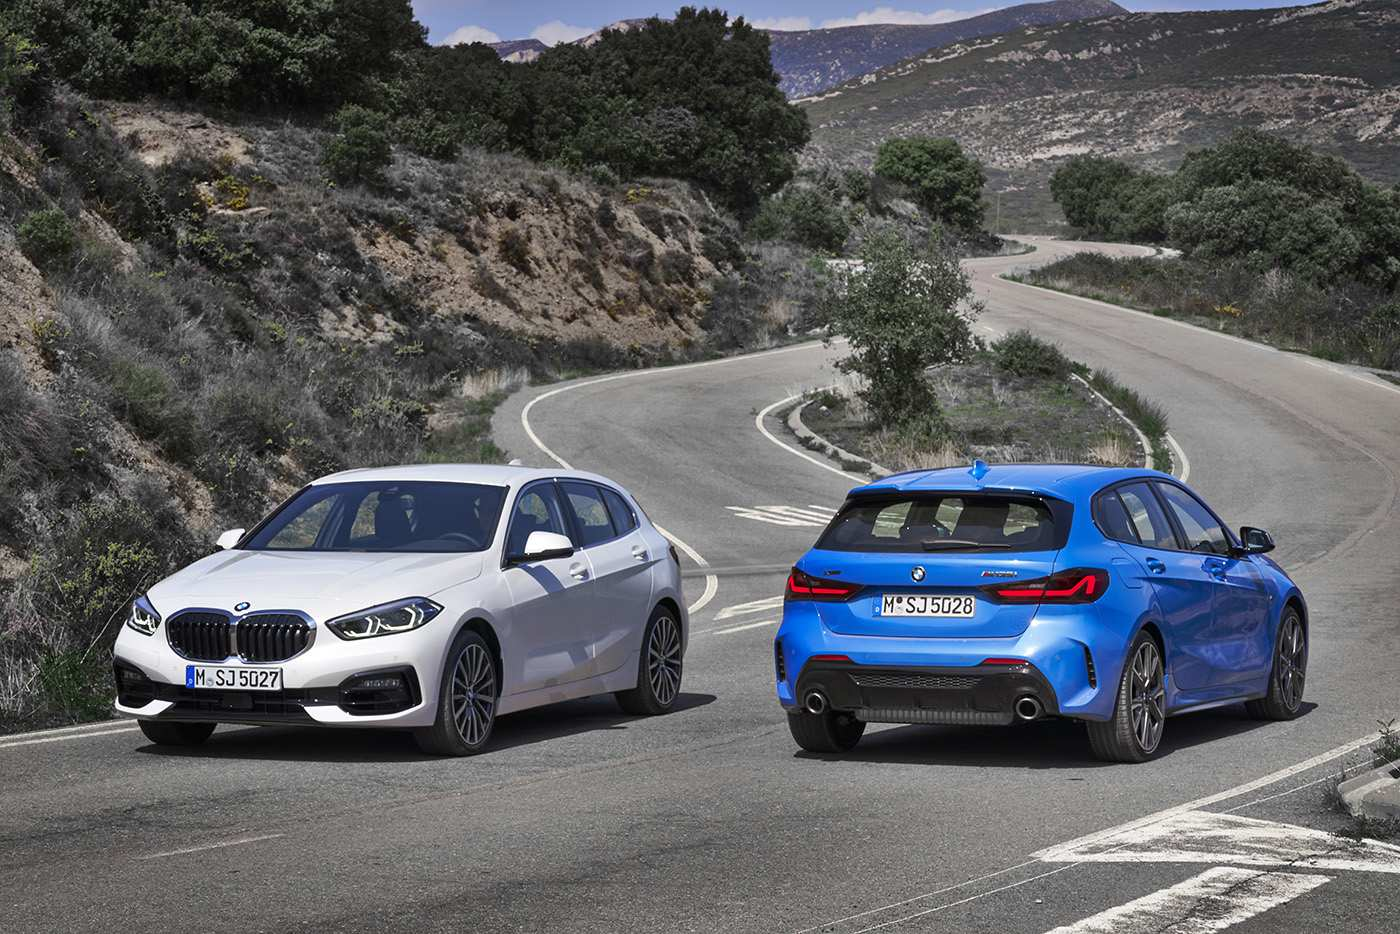 62 All New 2020 Bmw 1 Series Usa Prices